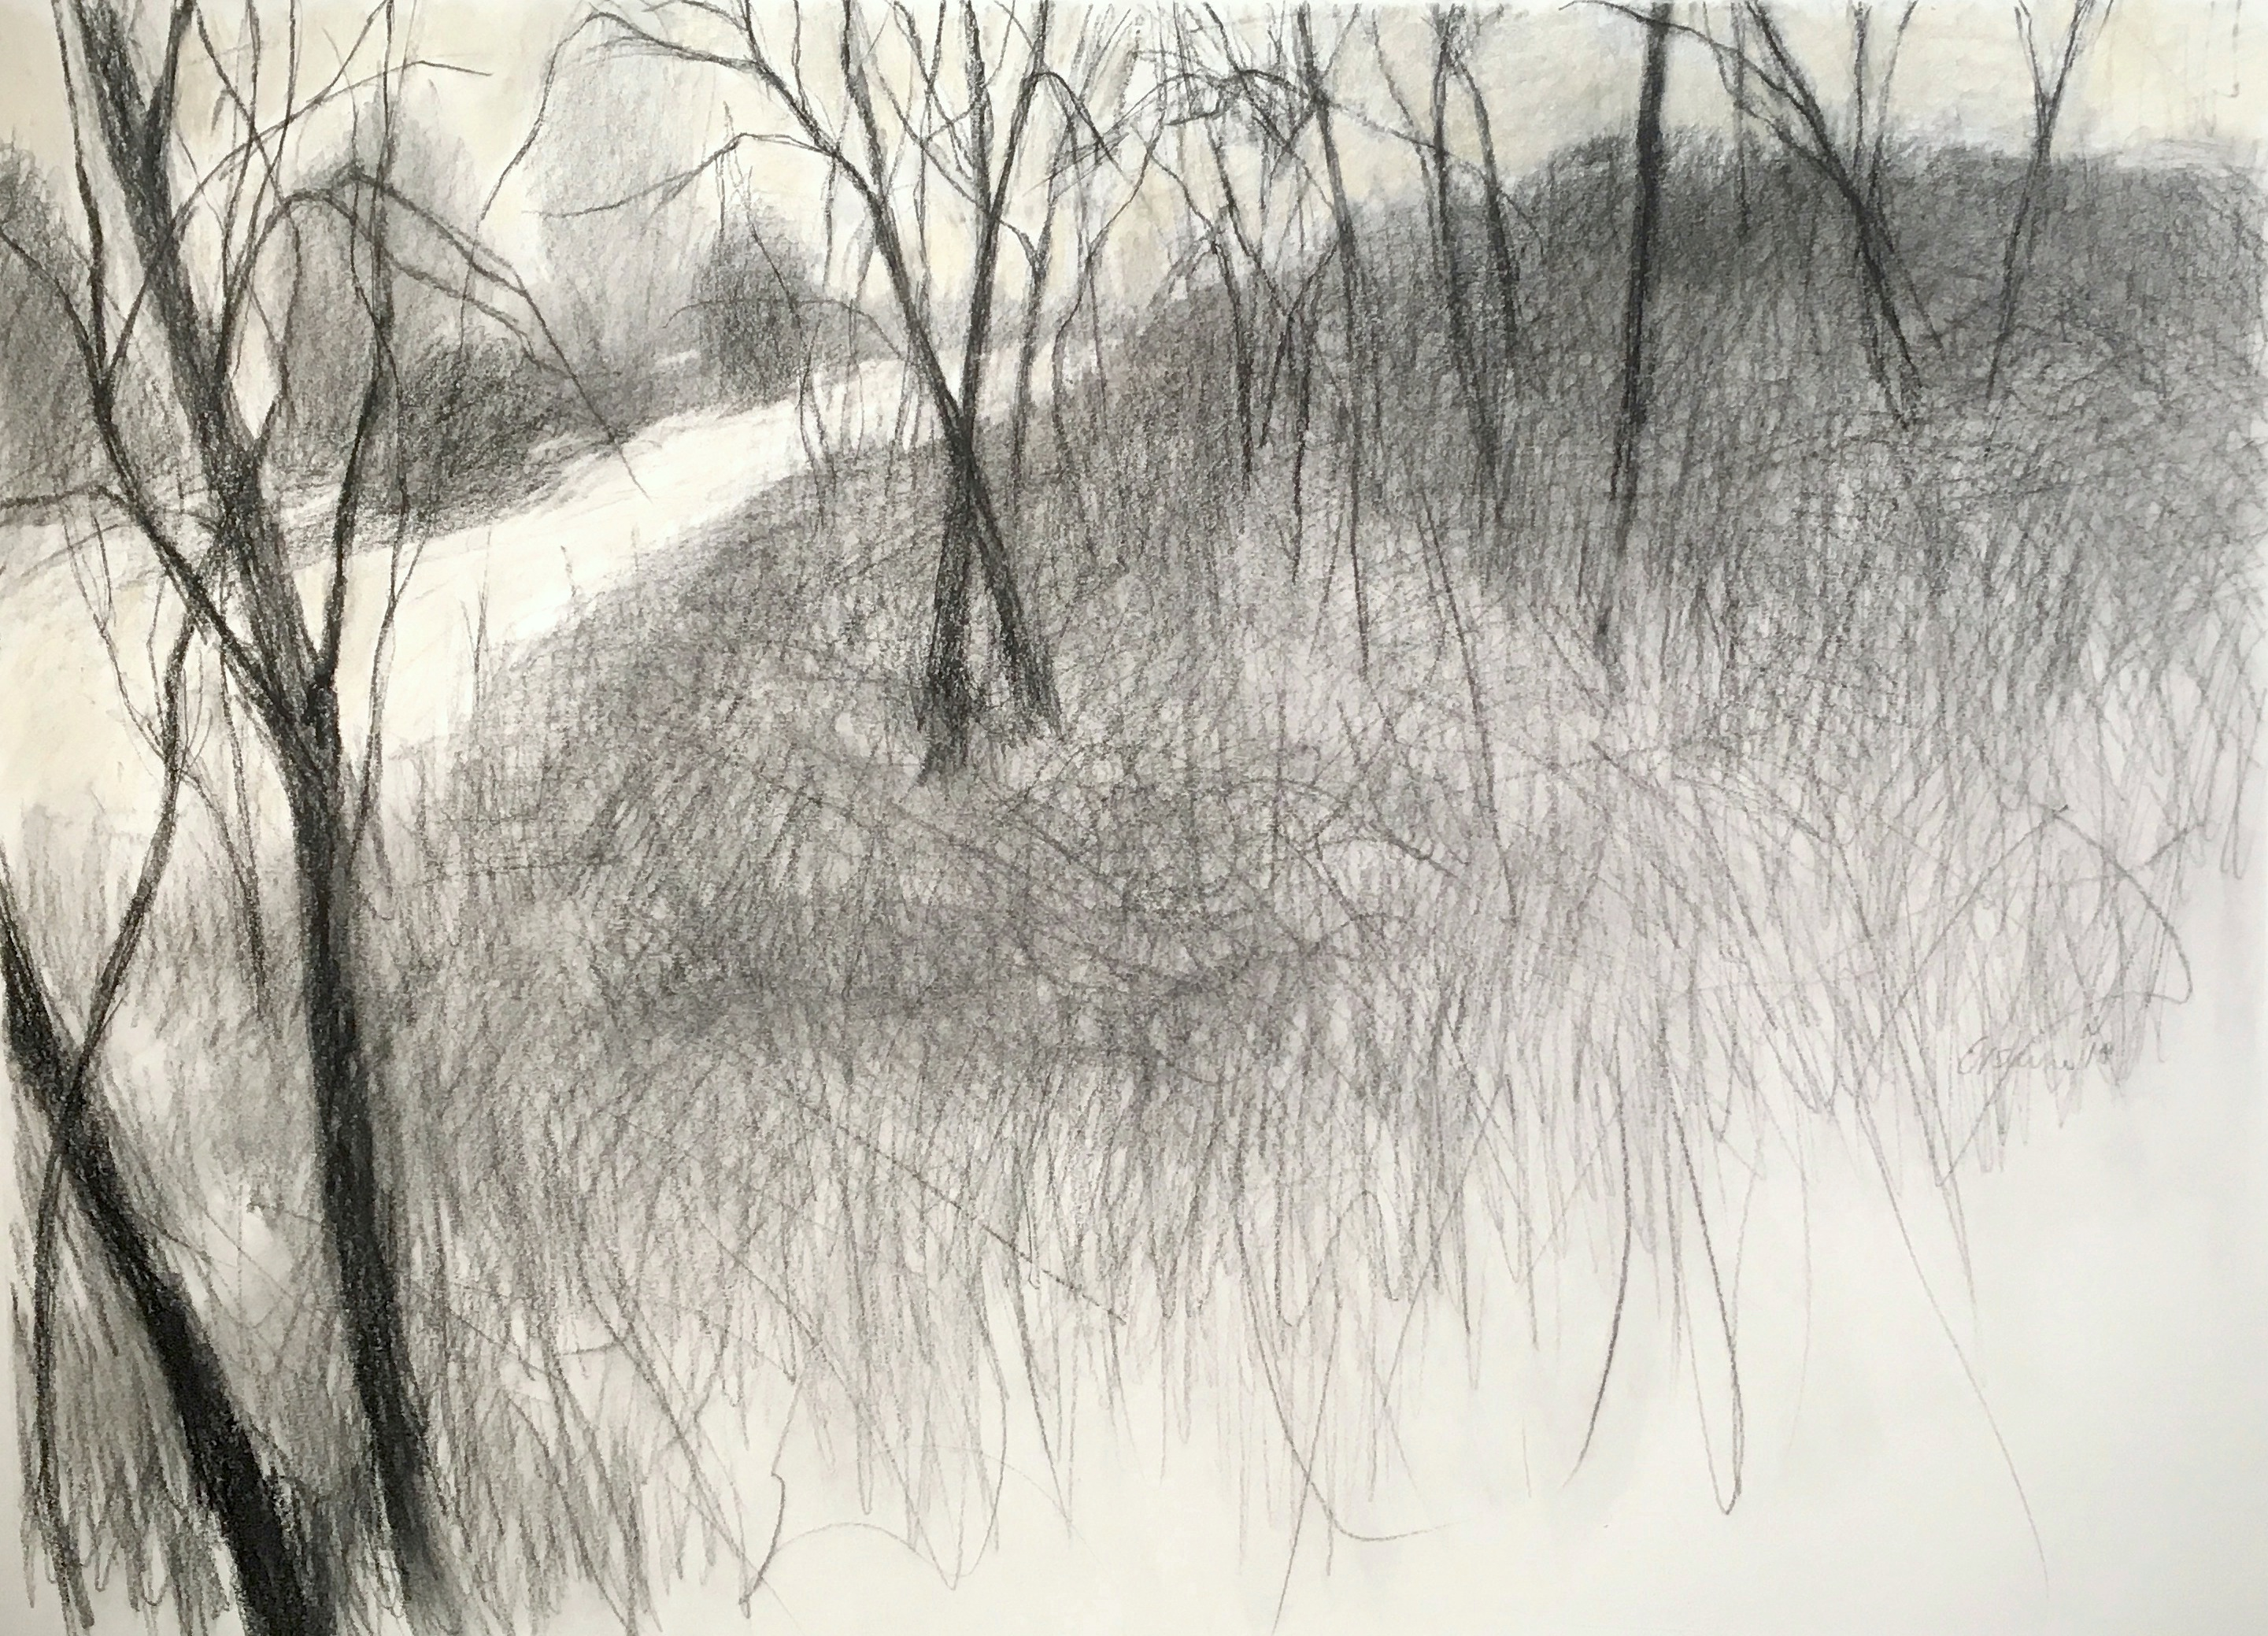 charcoal drawing of a hillside with trees and a pathway